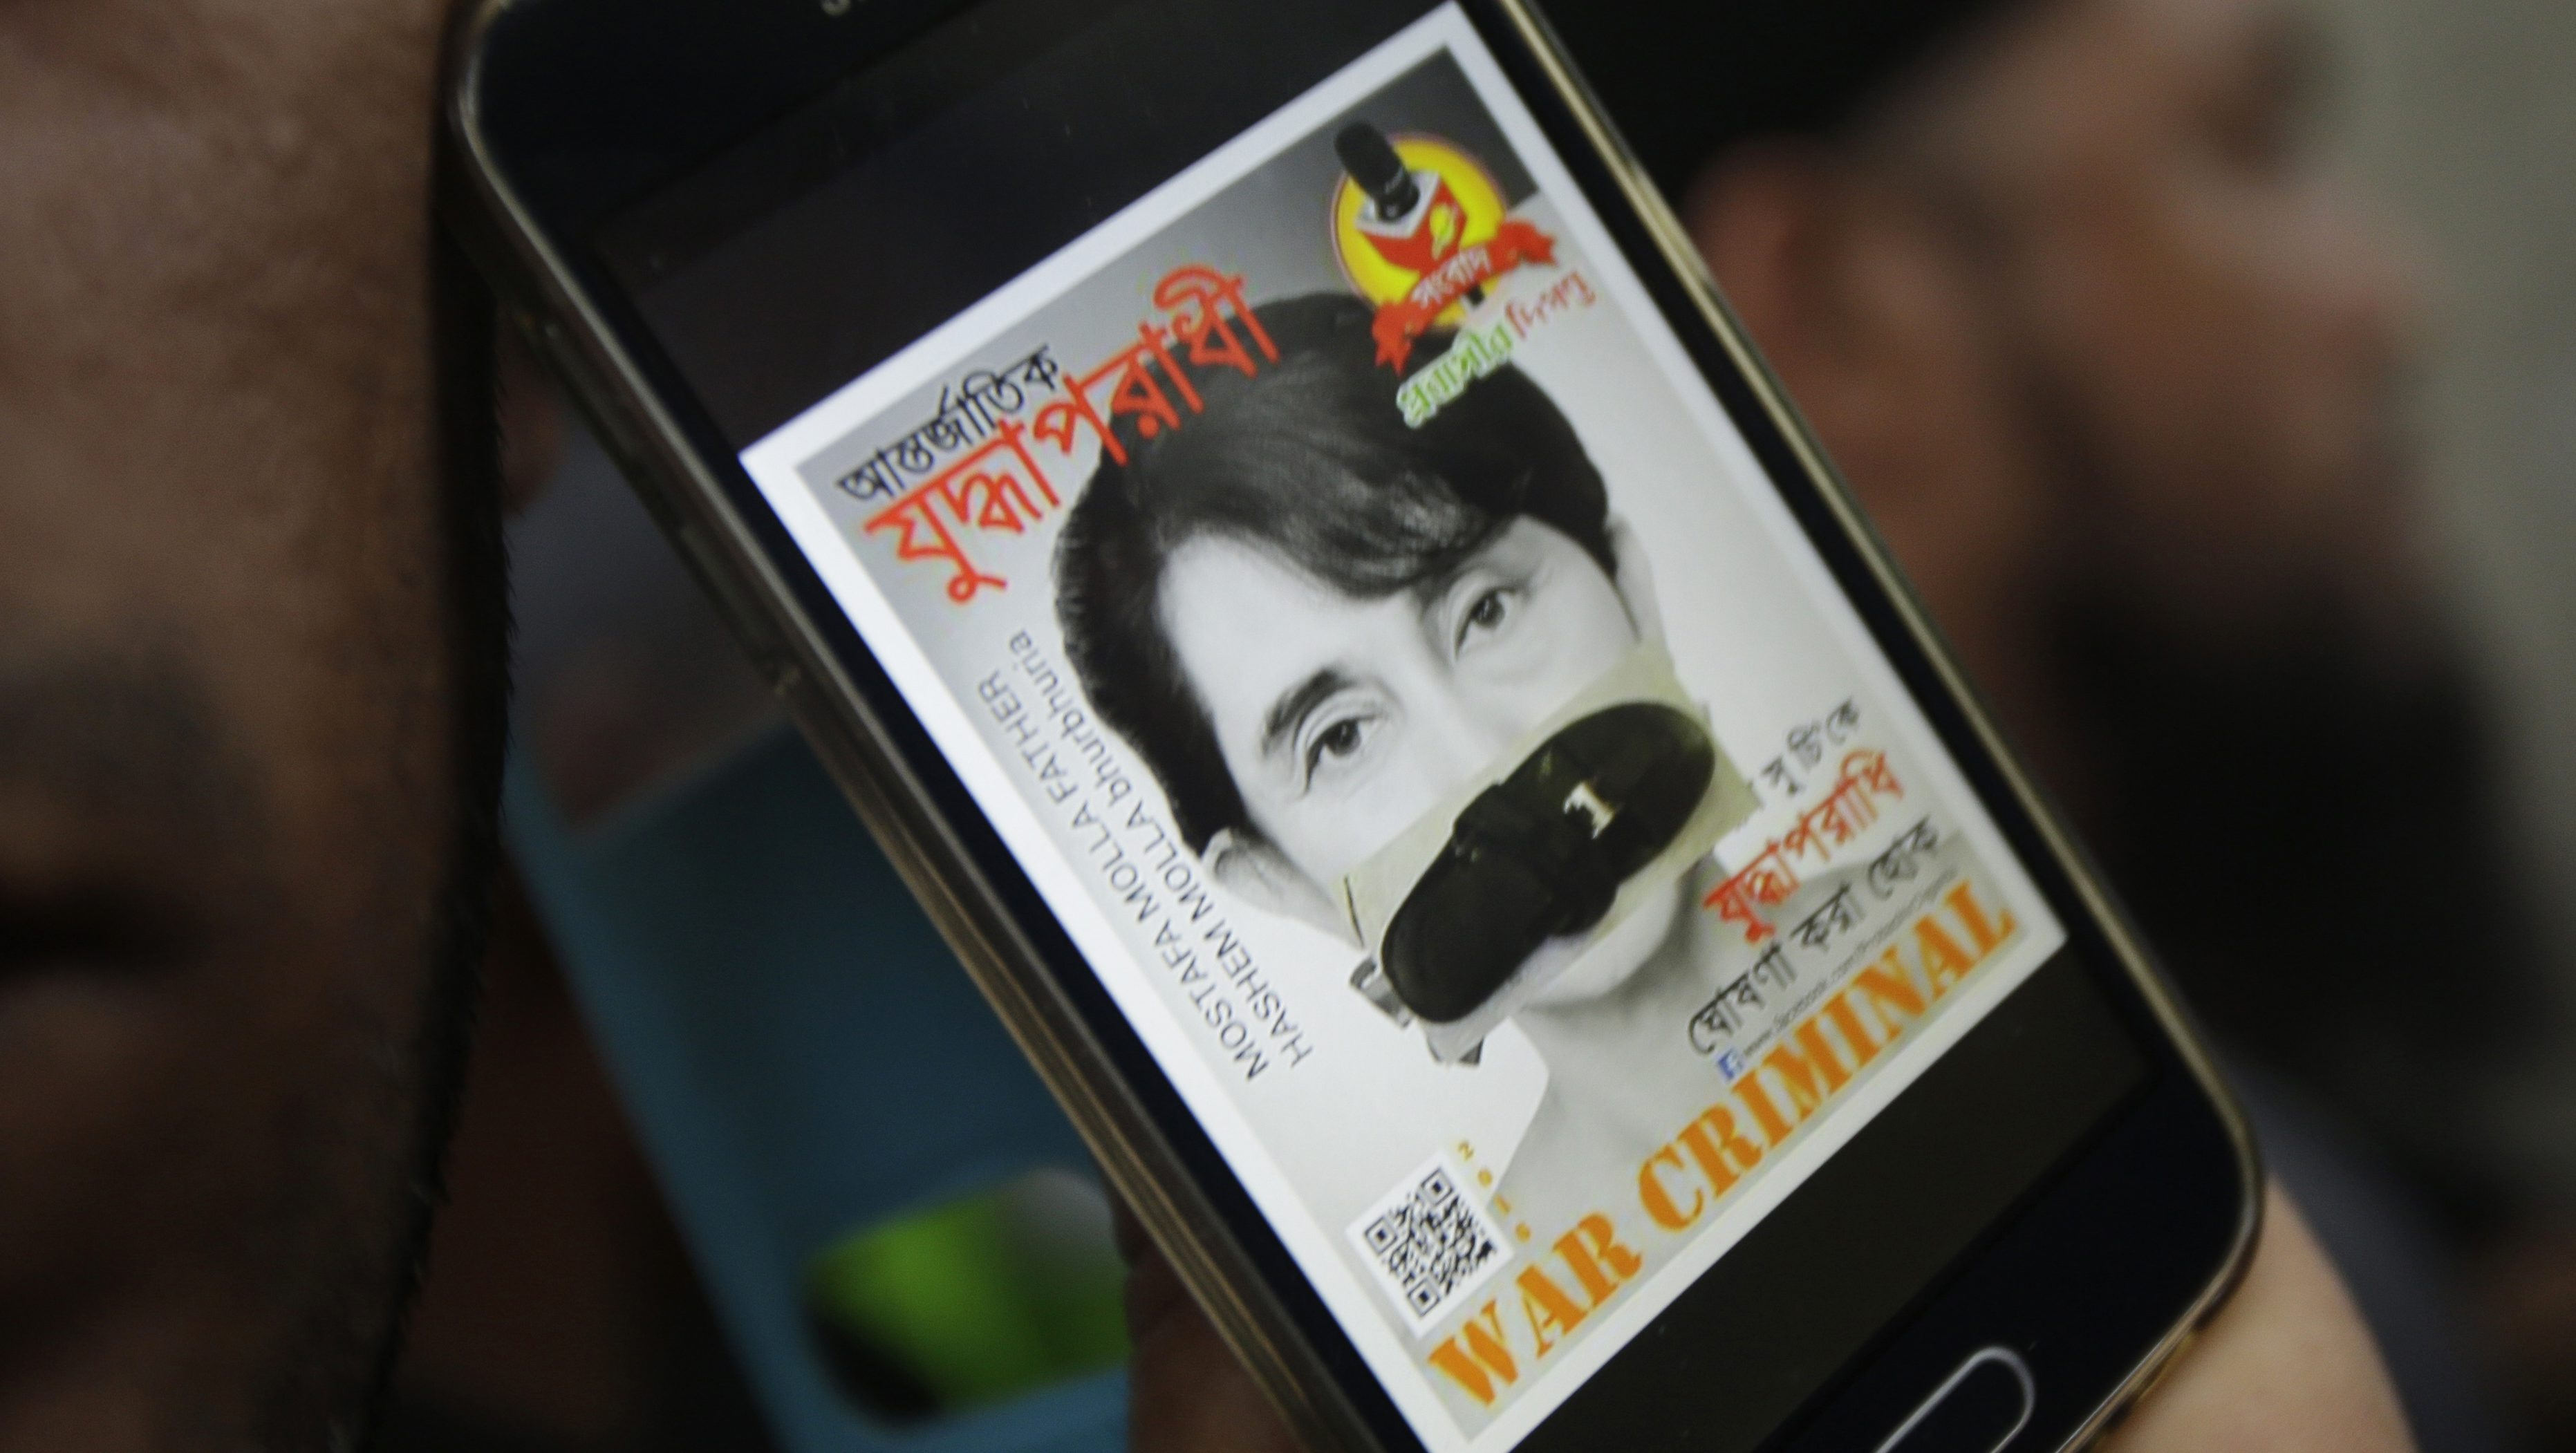 A portrait of Myanmar's Foreign Minister Aung San Suu Kyi with her mouth covered with a sandal displayed on a mobile phone screen is shown by a Rohingya protester during a demonstration in front of the Myanmar Embassy in Bangkok, Thailand, Friday, Nov. 25, 2016 against the persecution of Muslim Rohingya in Myanmar. (AP Photo/Sakchai Lalit)